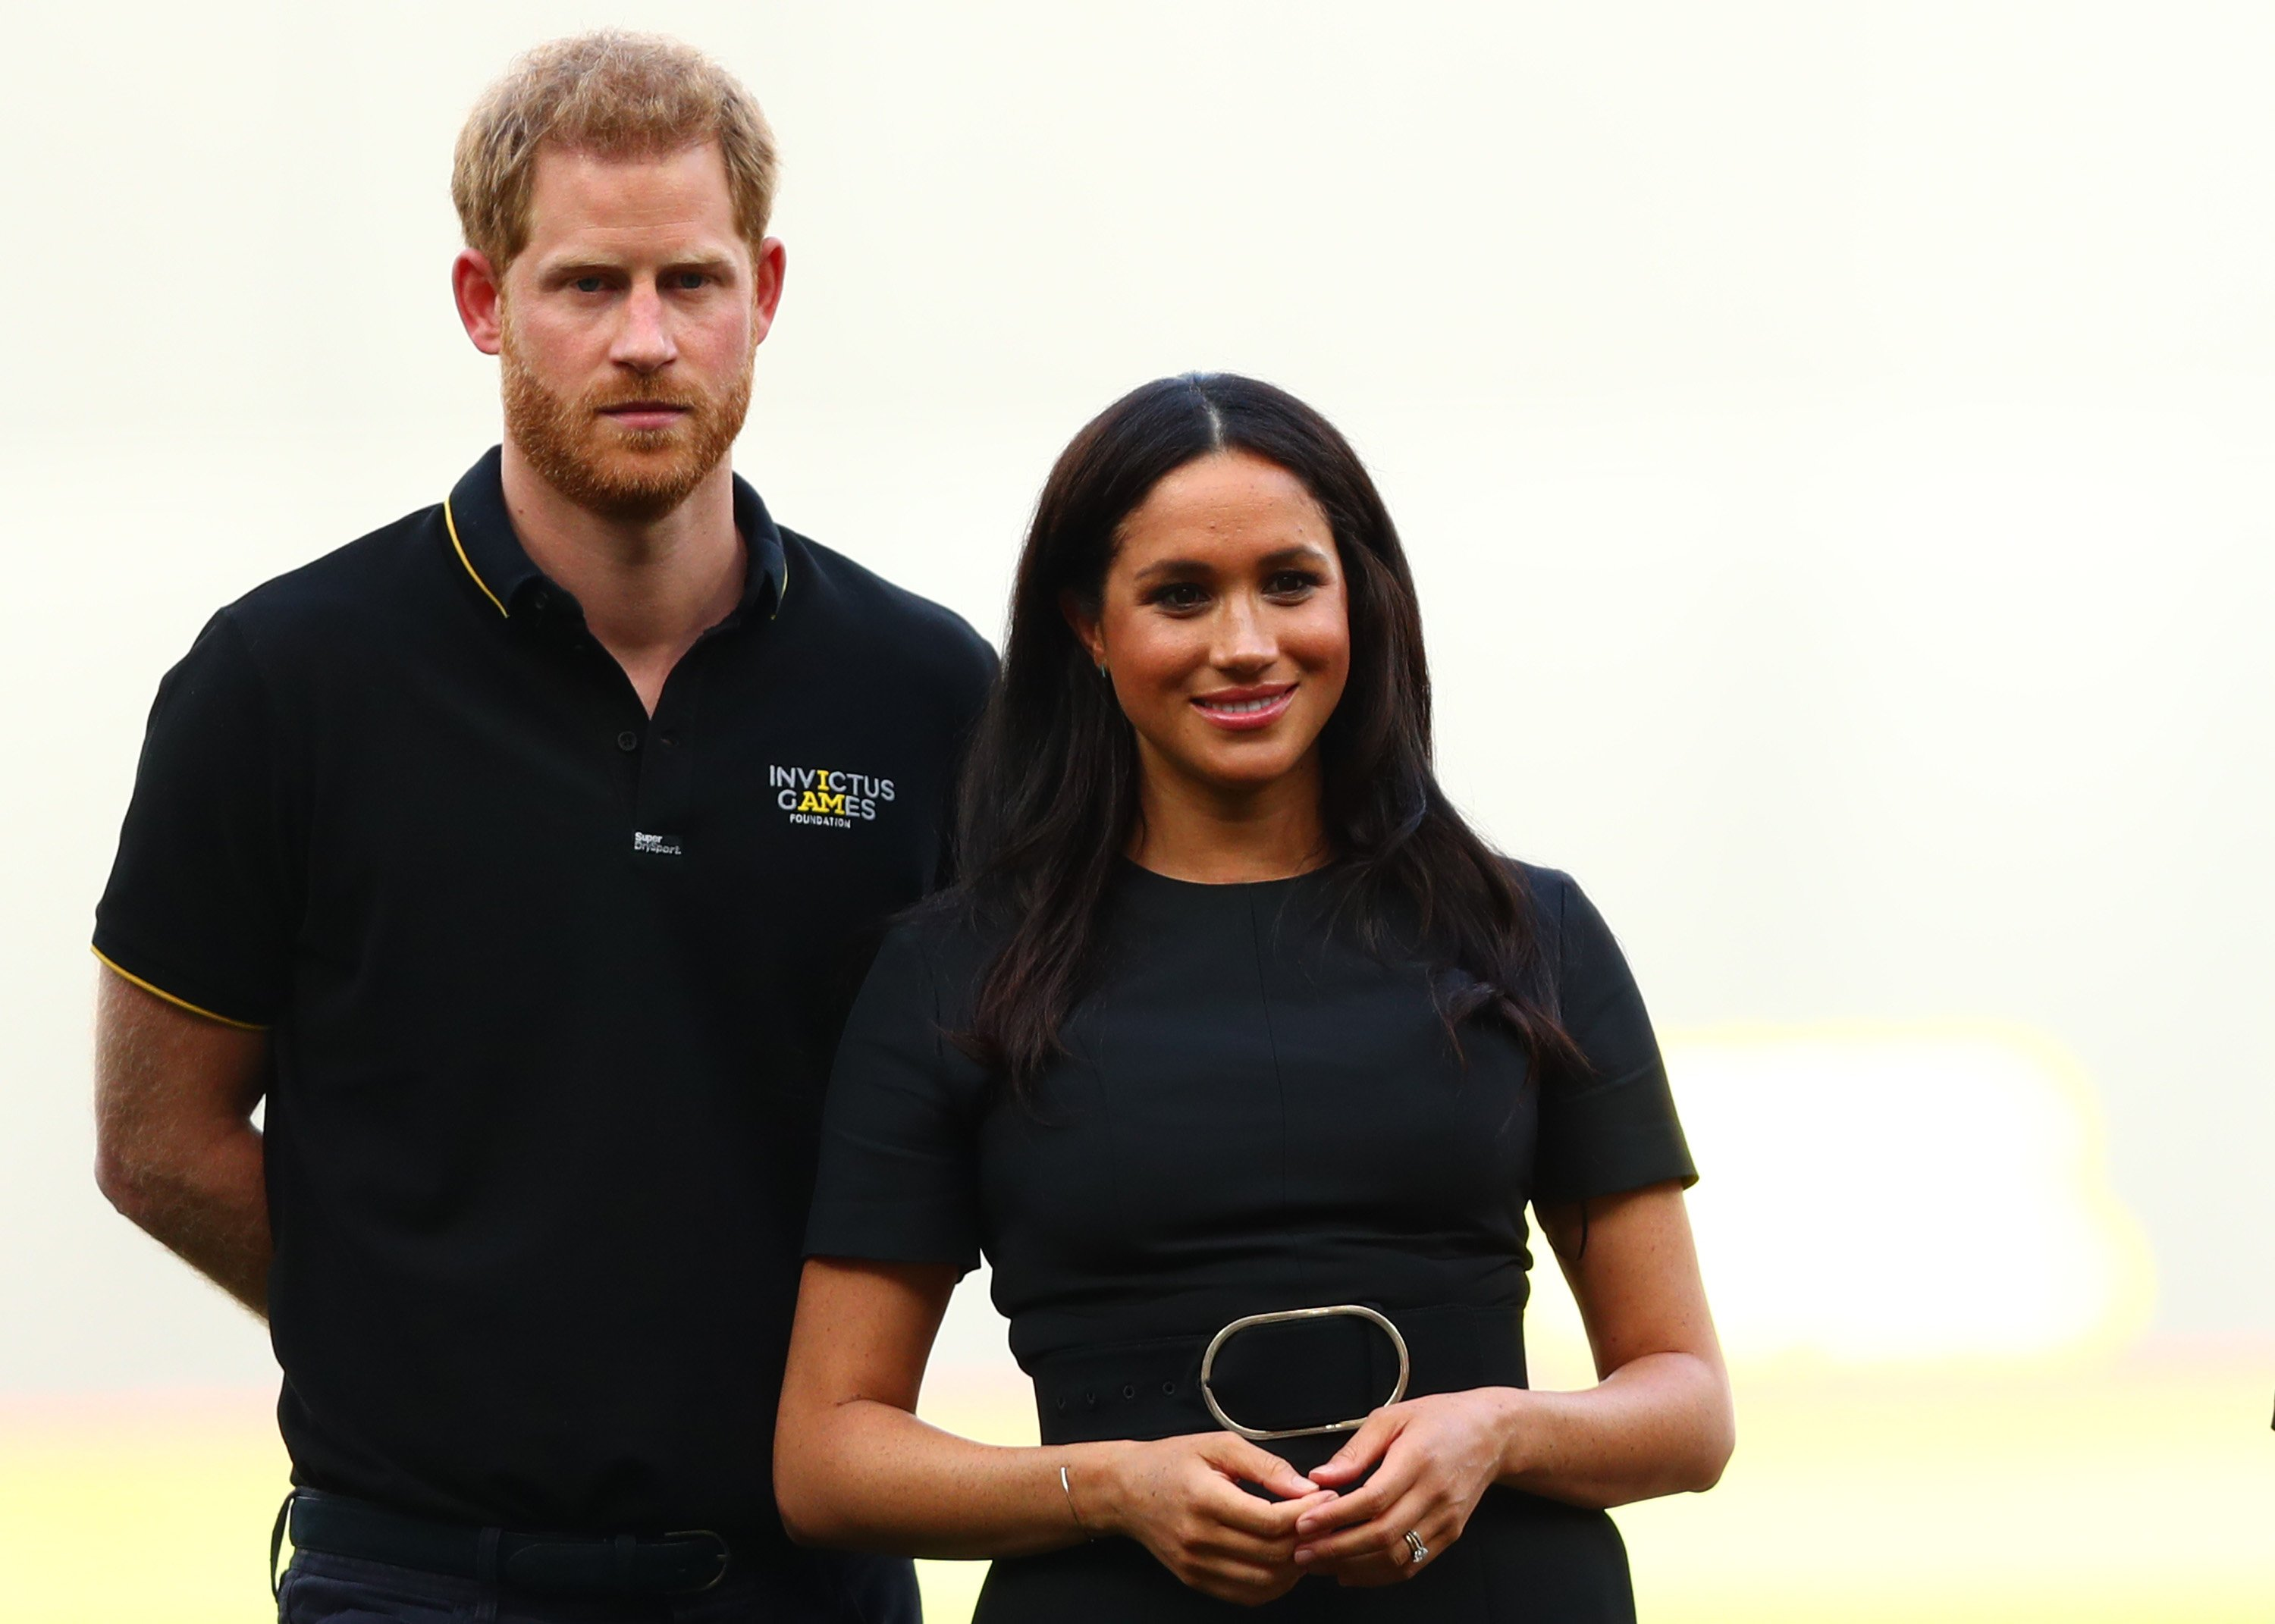 Meghan Markle und Prinz Harry, 2019 | Quelle: Getty Images